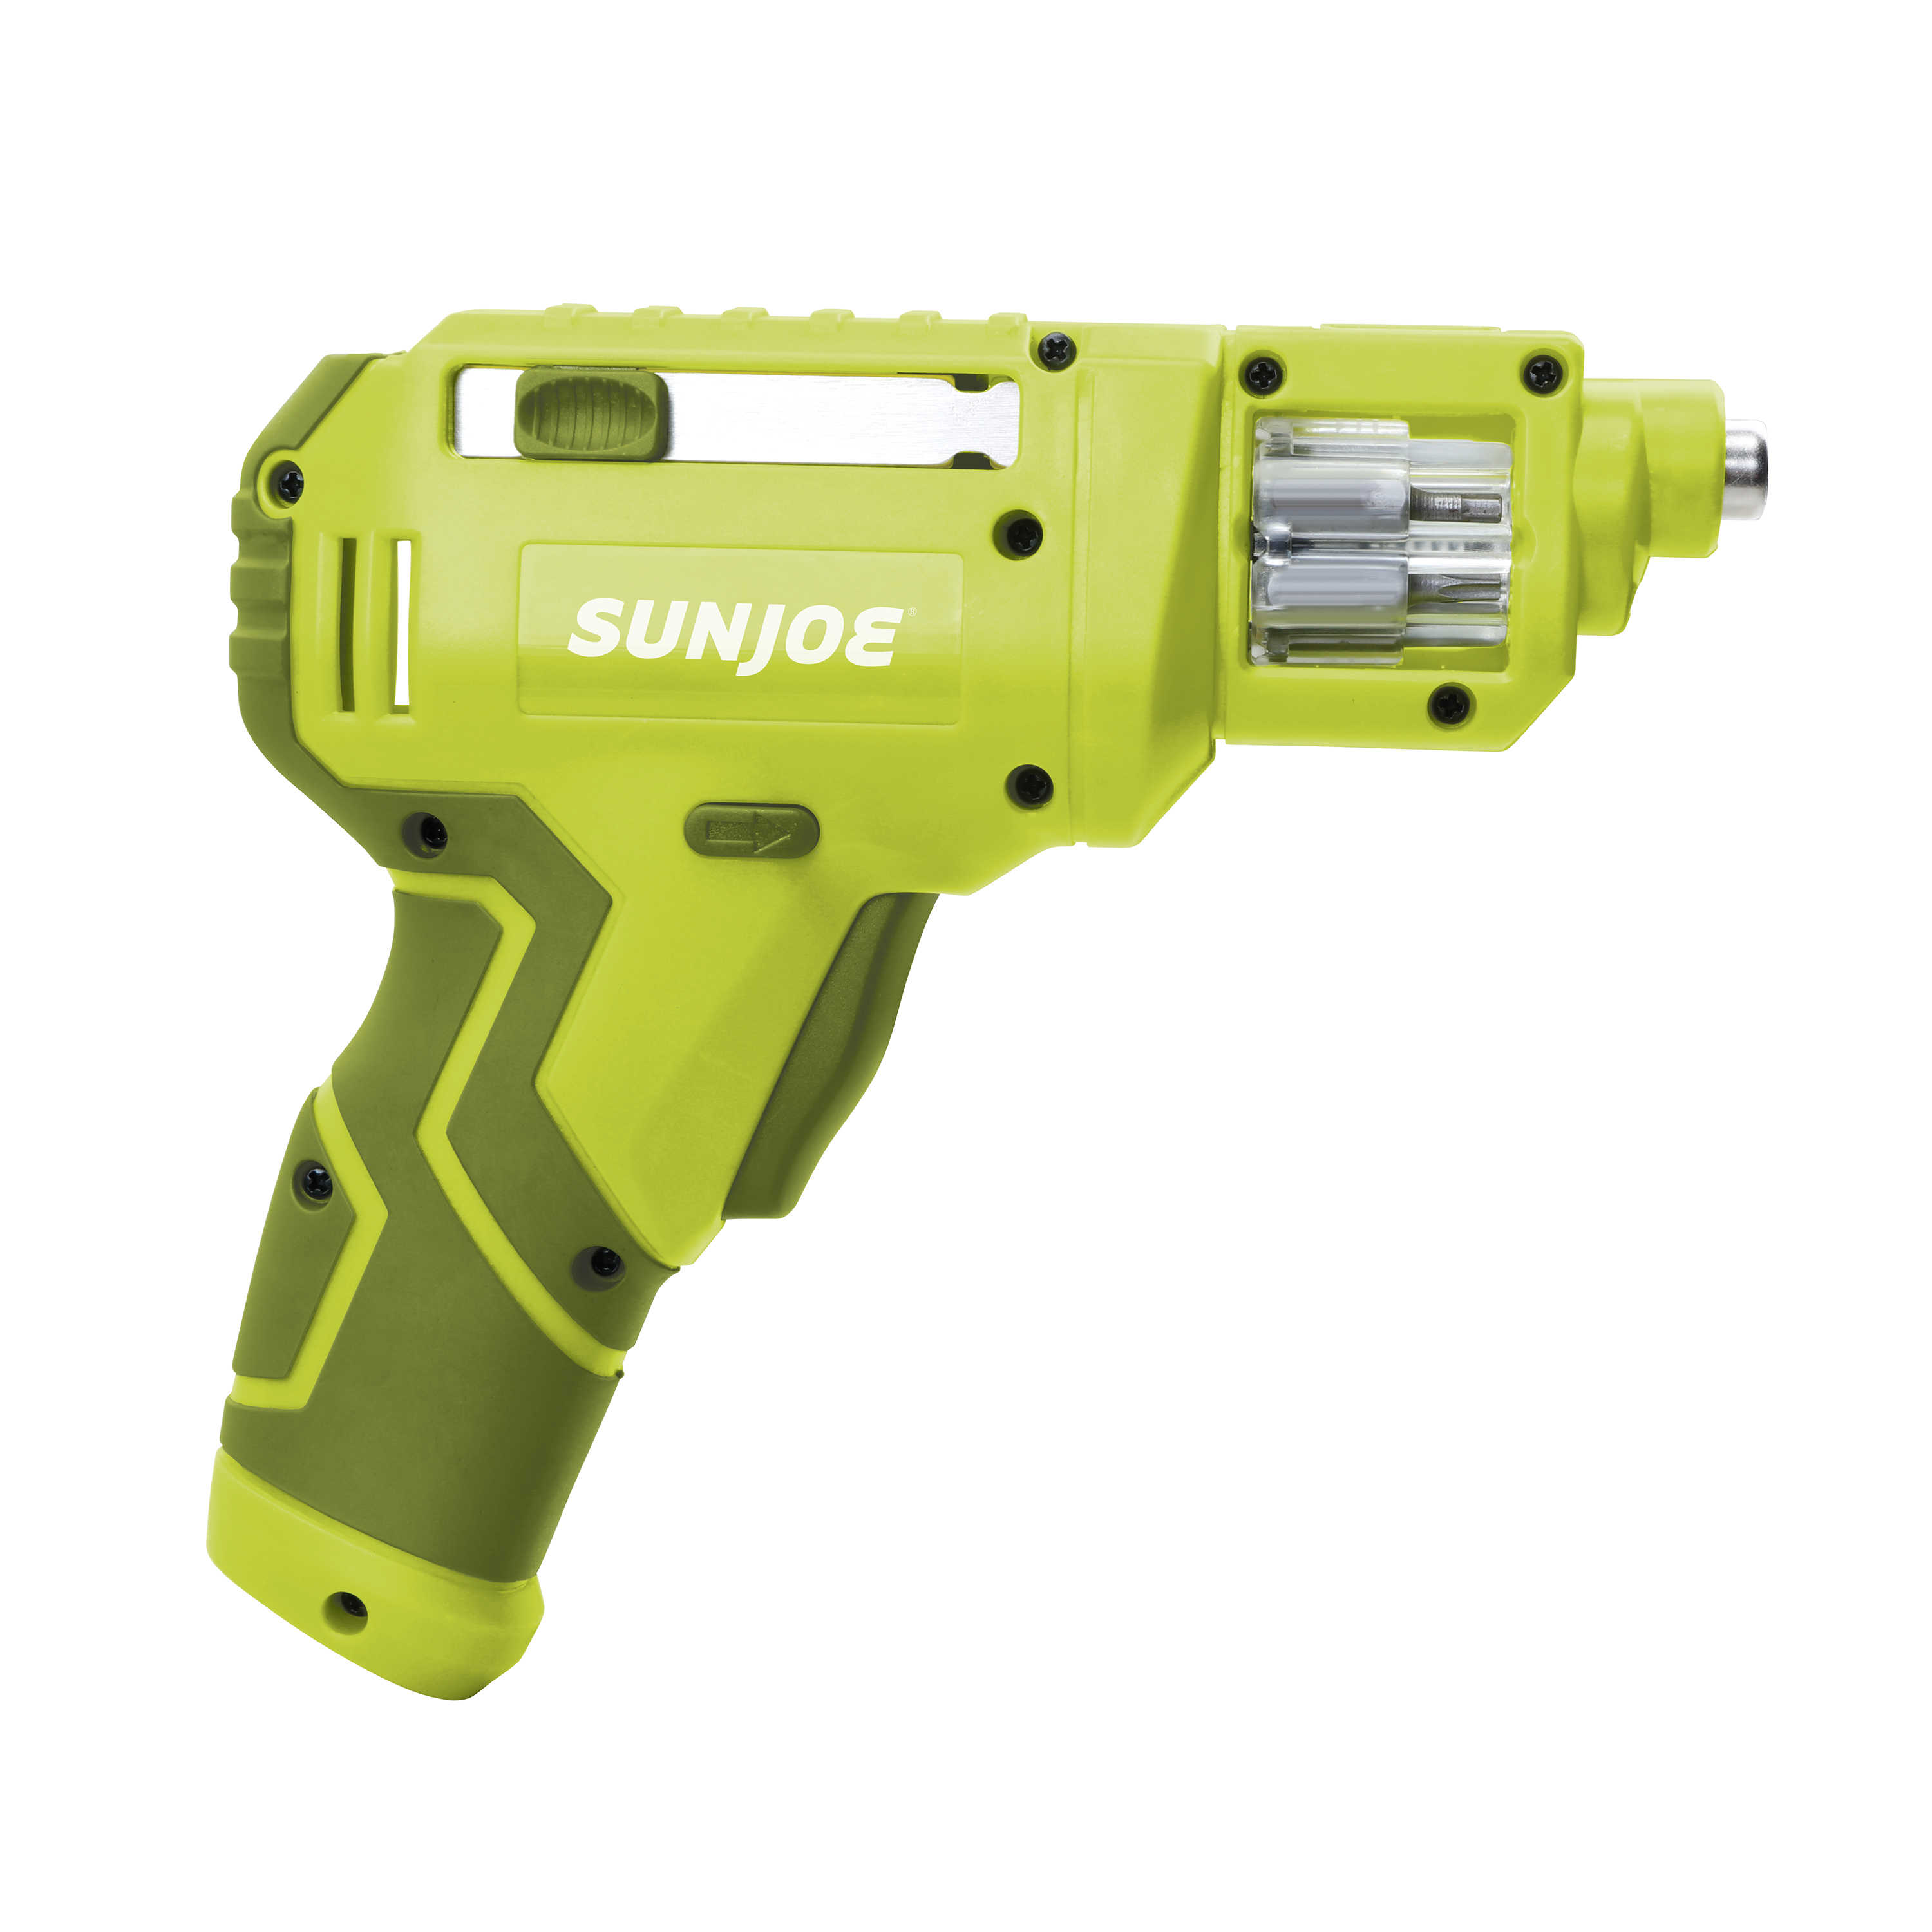 Sun Joe SJ4VSD Lithium-Ion Cordless Rechargeable Power Screwdriver | 4-Volt MAX w/ Quick Change Bit System